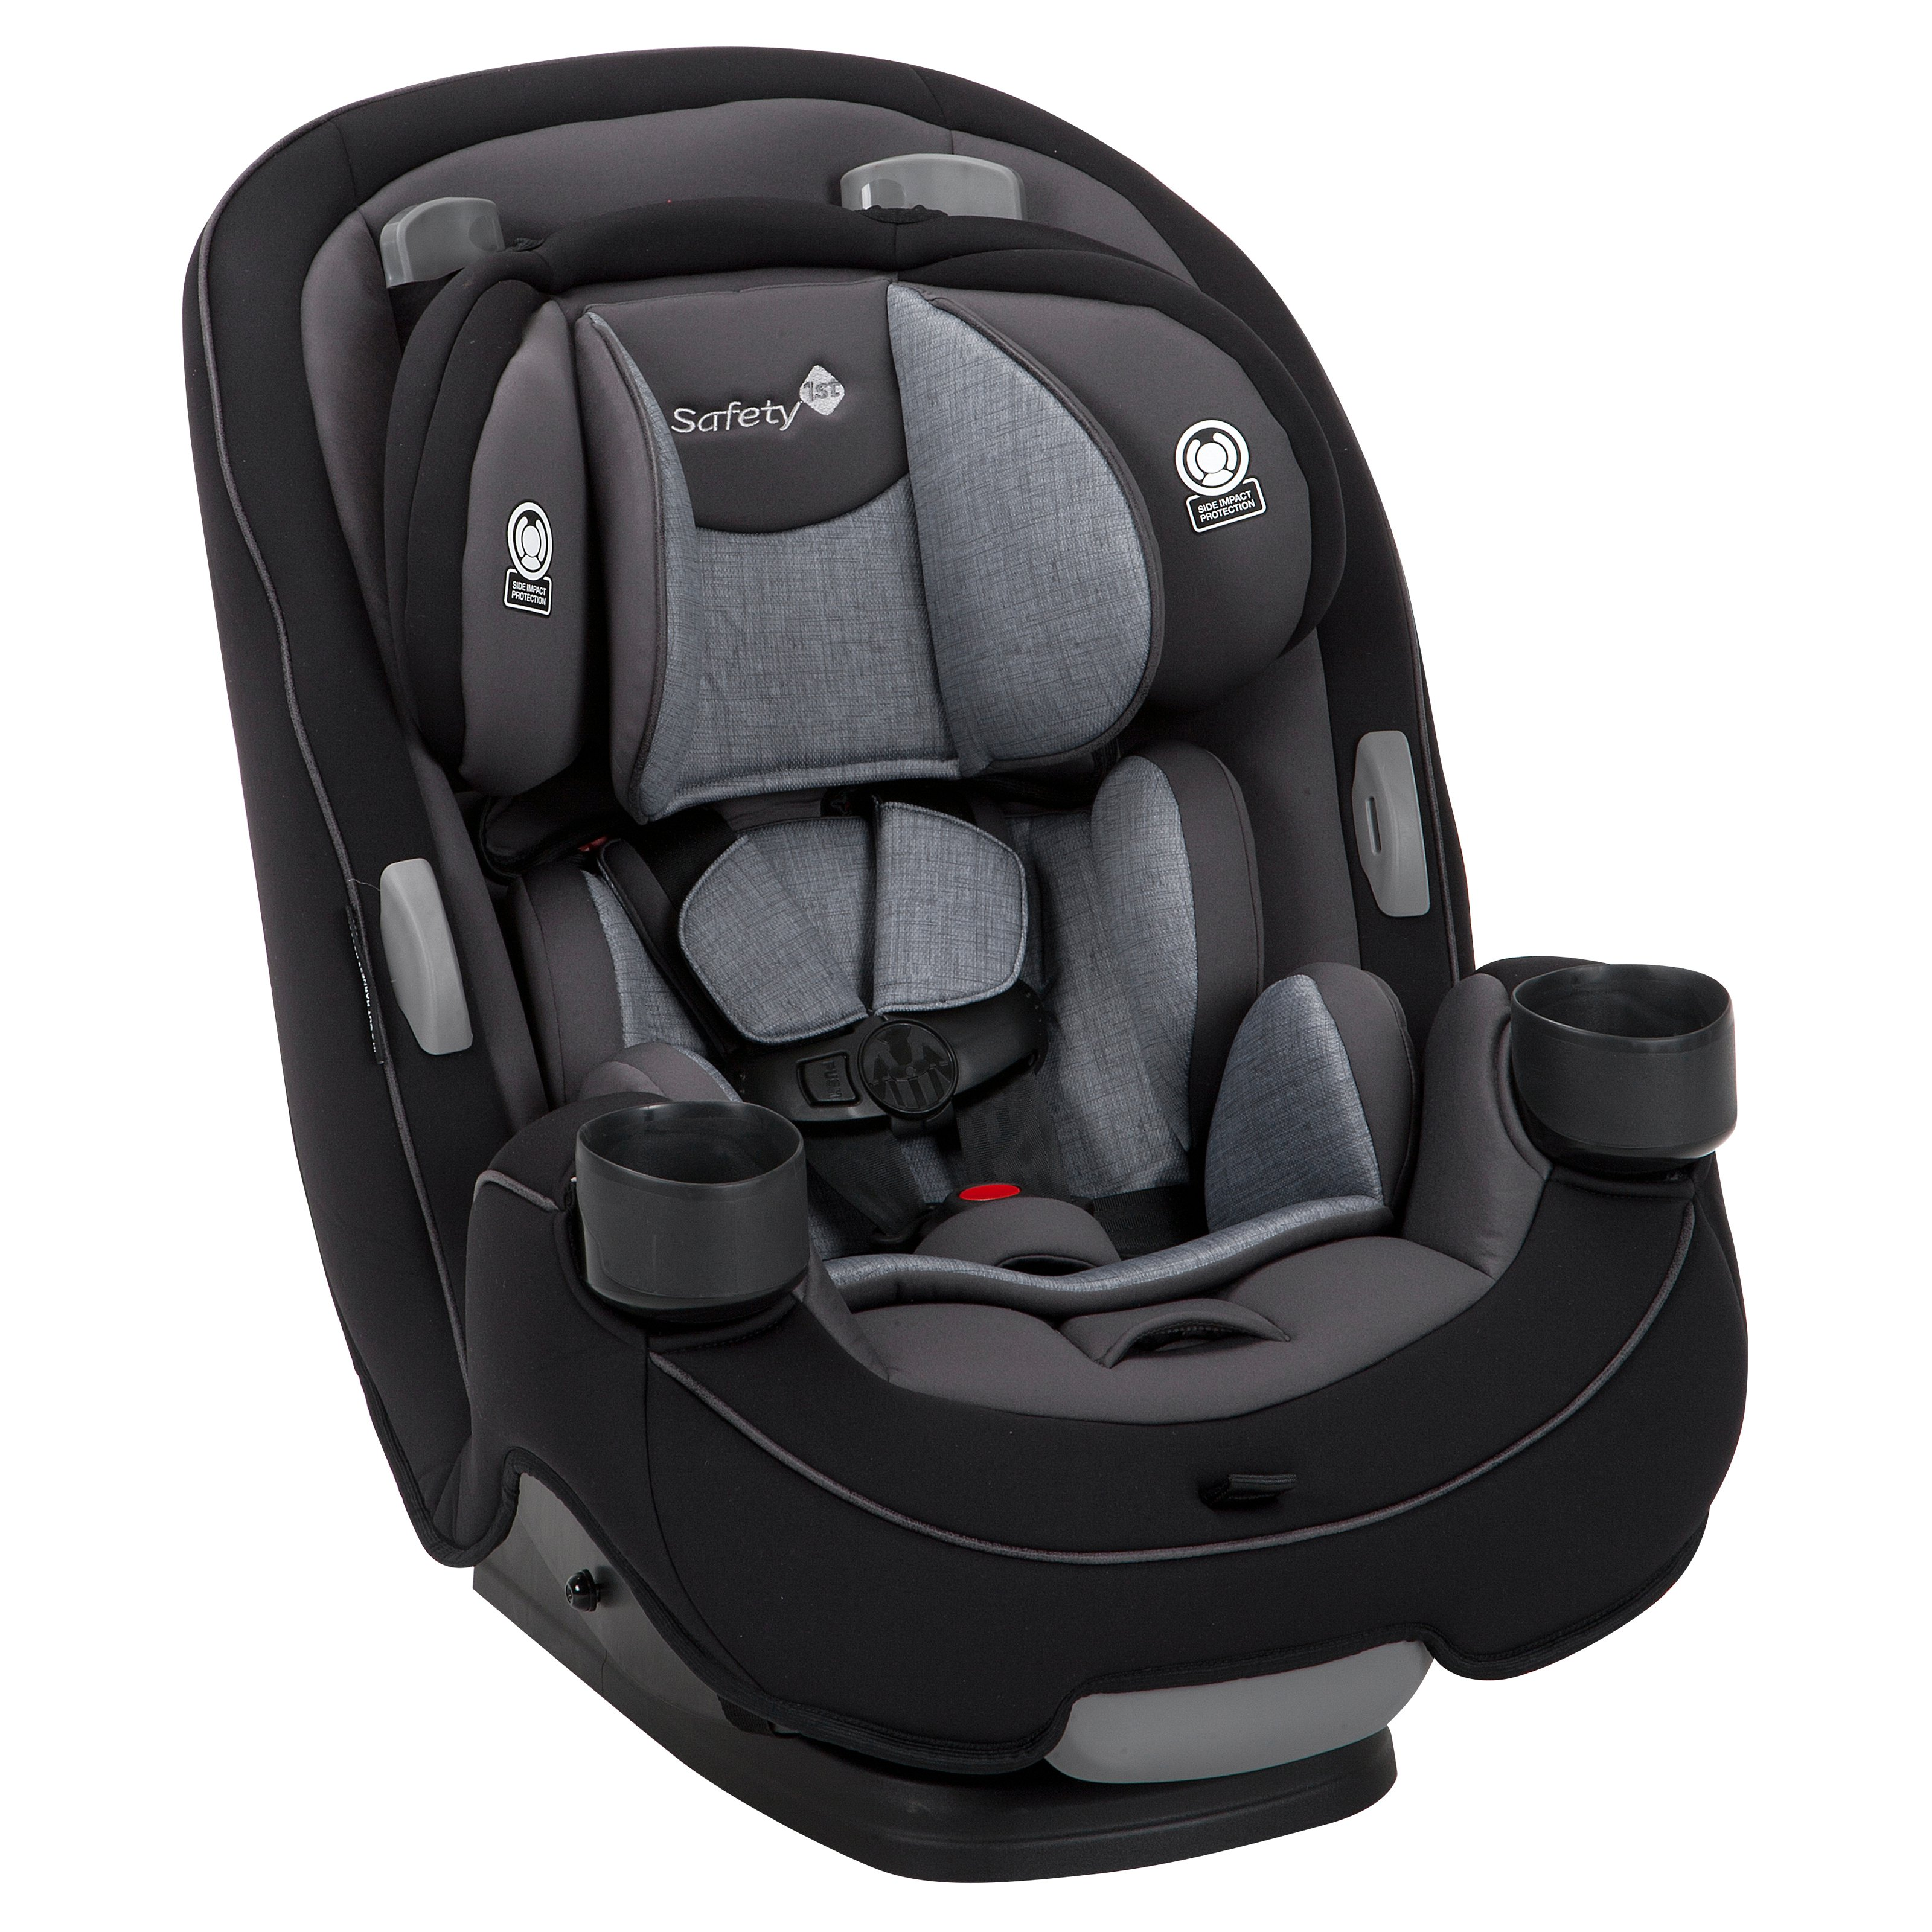 Safety 1st Grow and Go 3 in 1 Car Seat - Harvest Moon